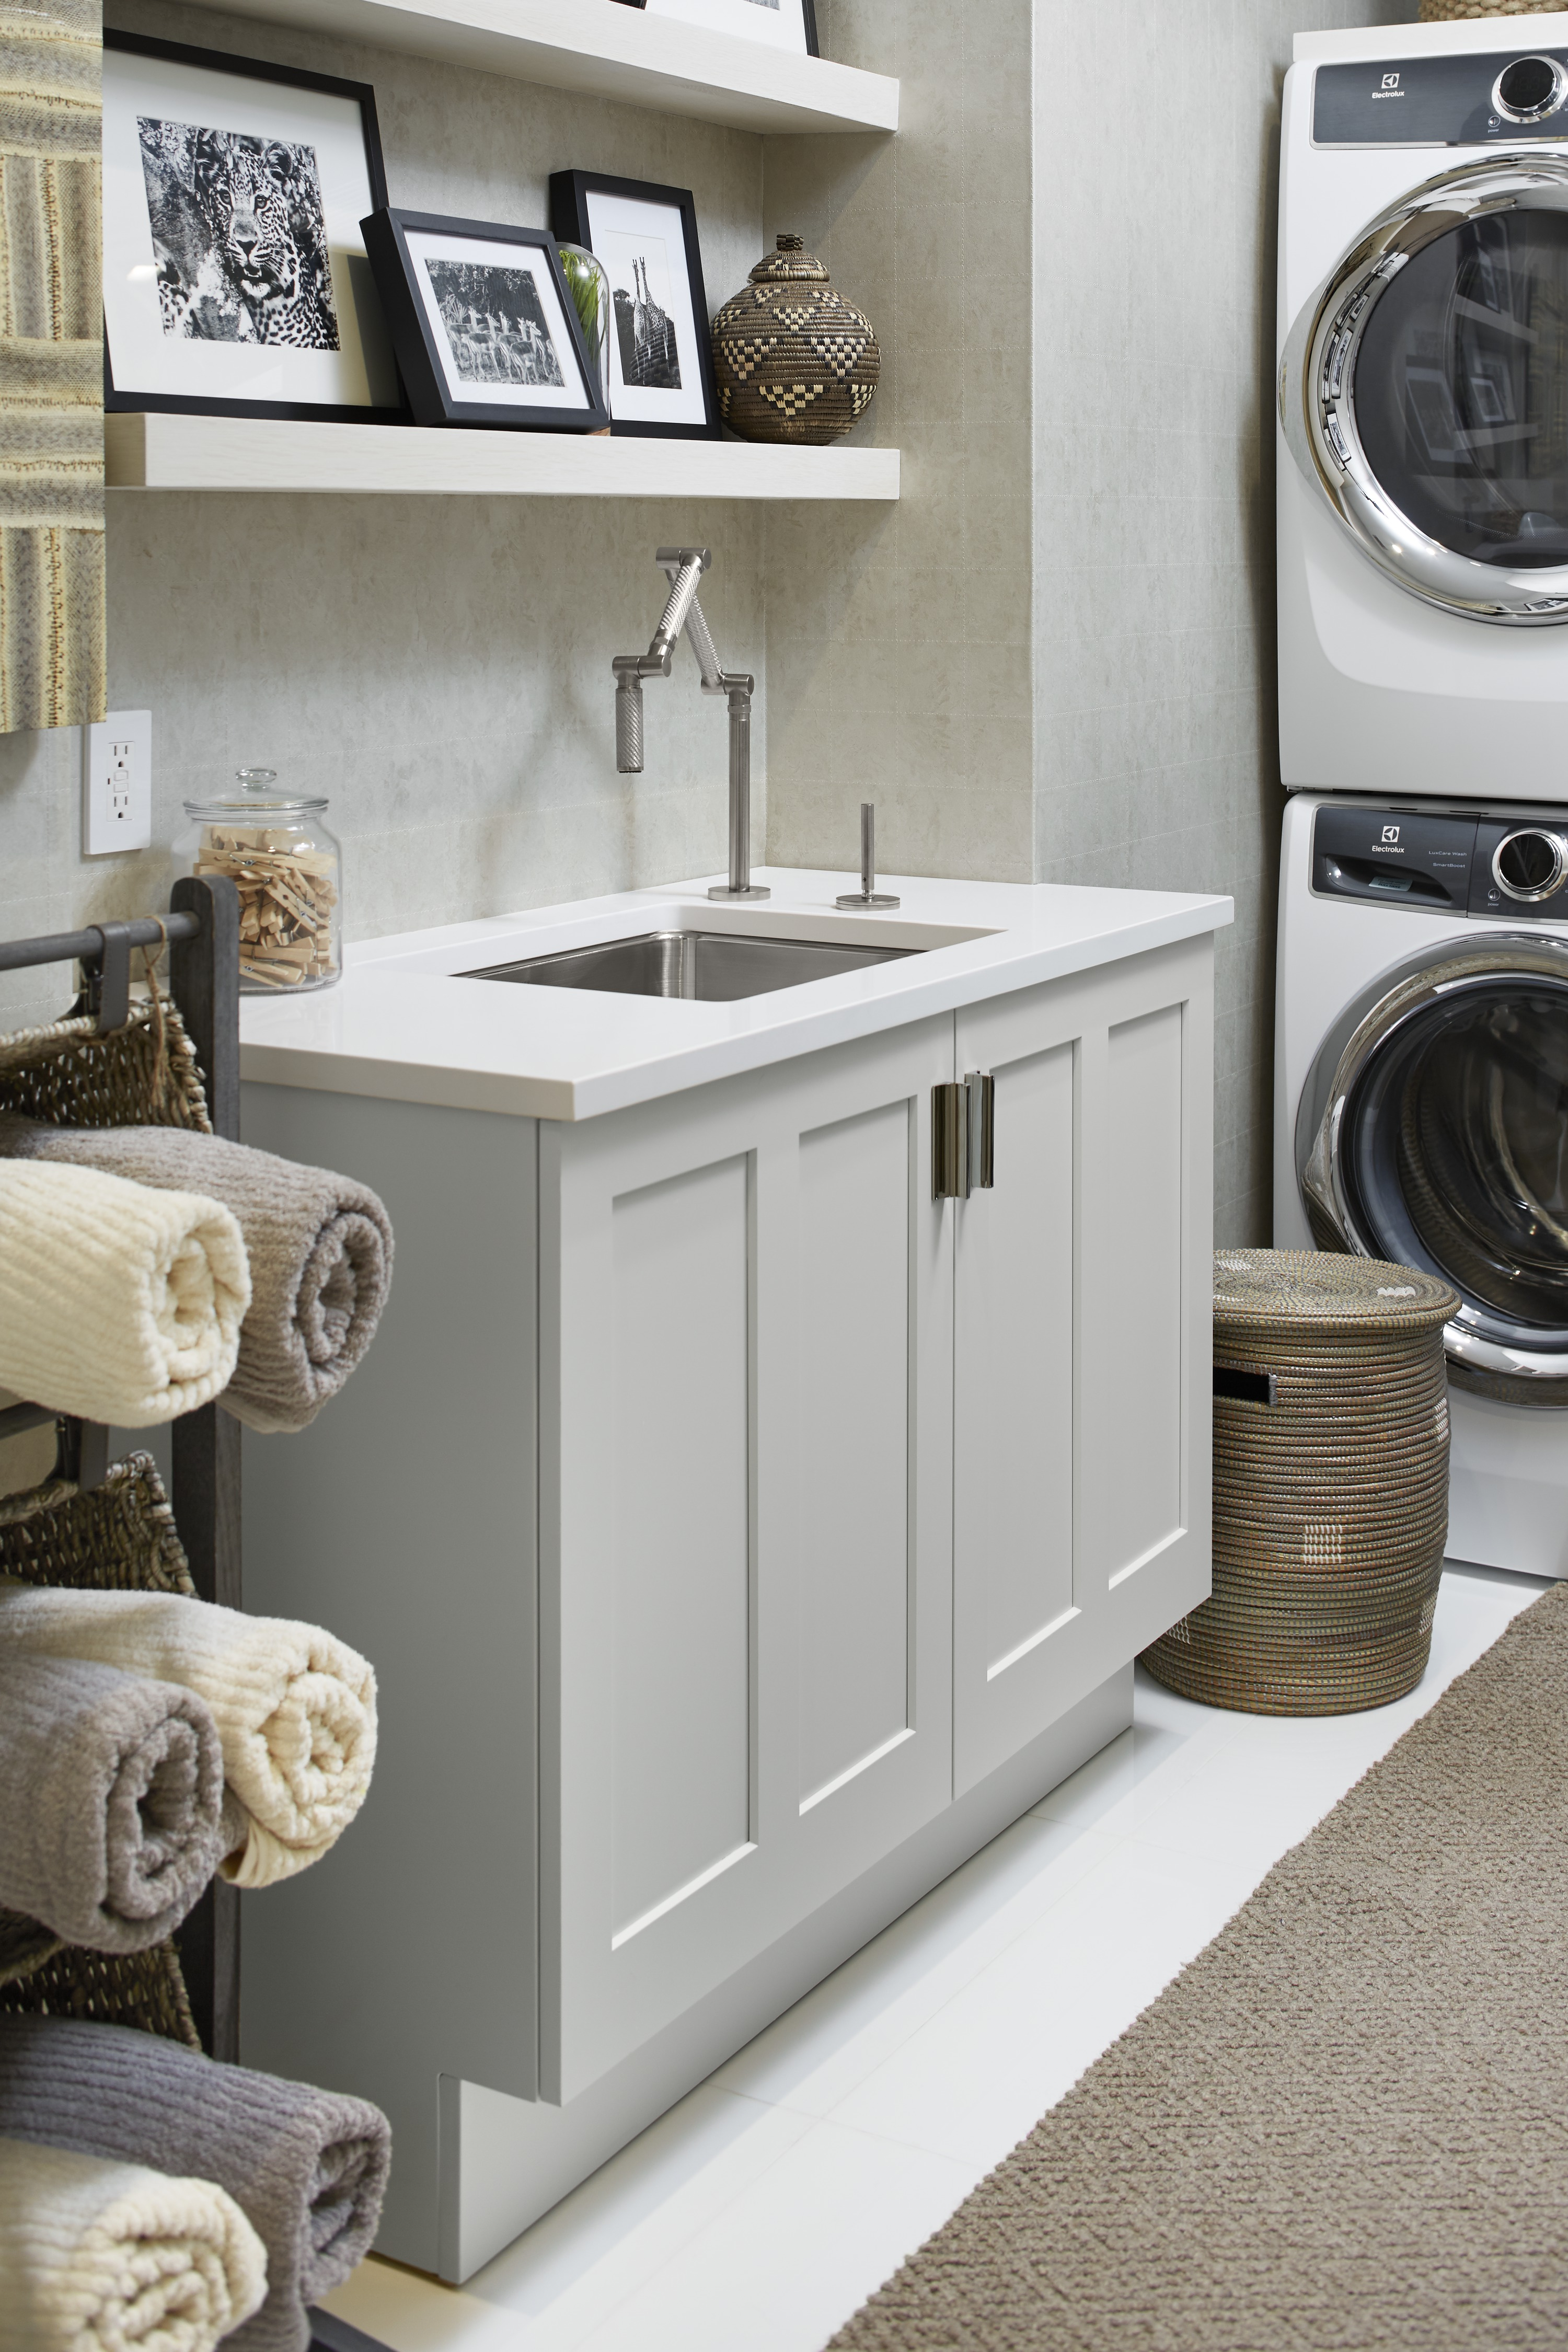 Karbon Faucet     Undertone Preserve Sink     Conveniently located on the second floor, the laundry is smart and stylish. A stainless steel sink paired with an articulating faucet make it easy to tackle spills and stains.